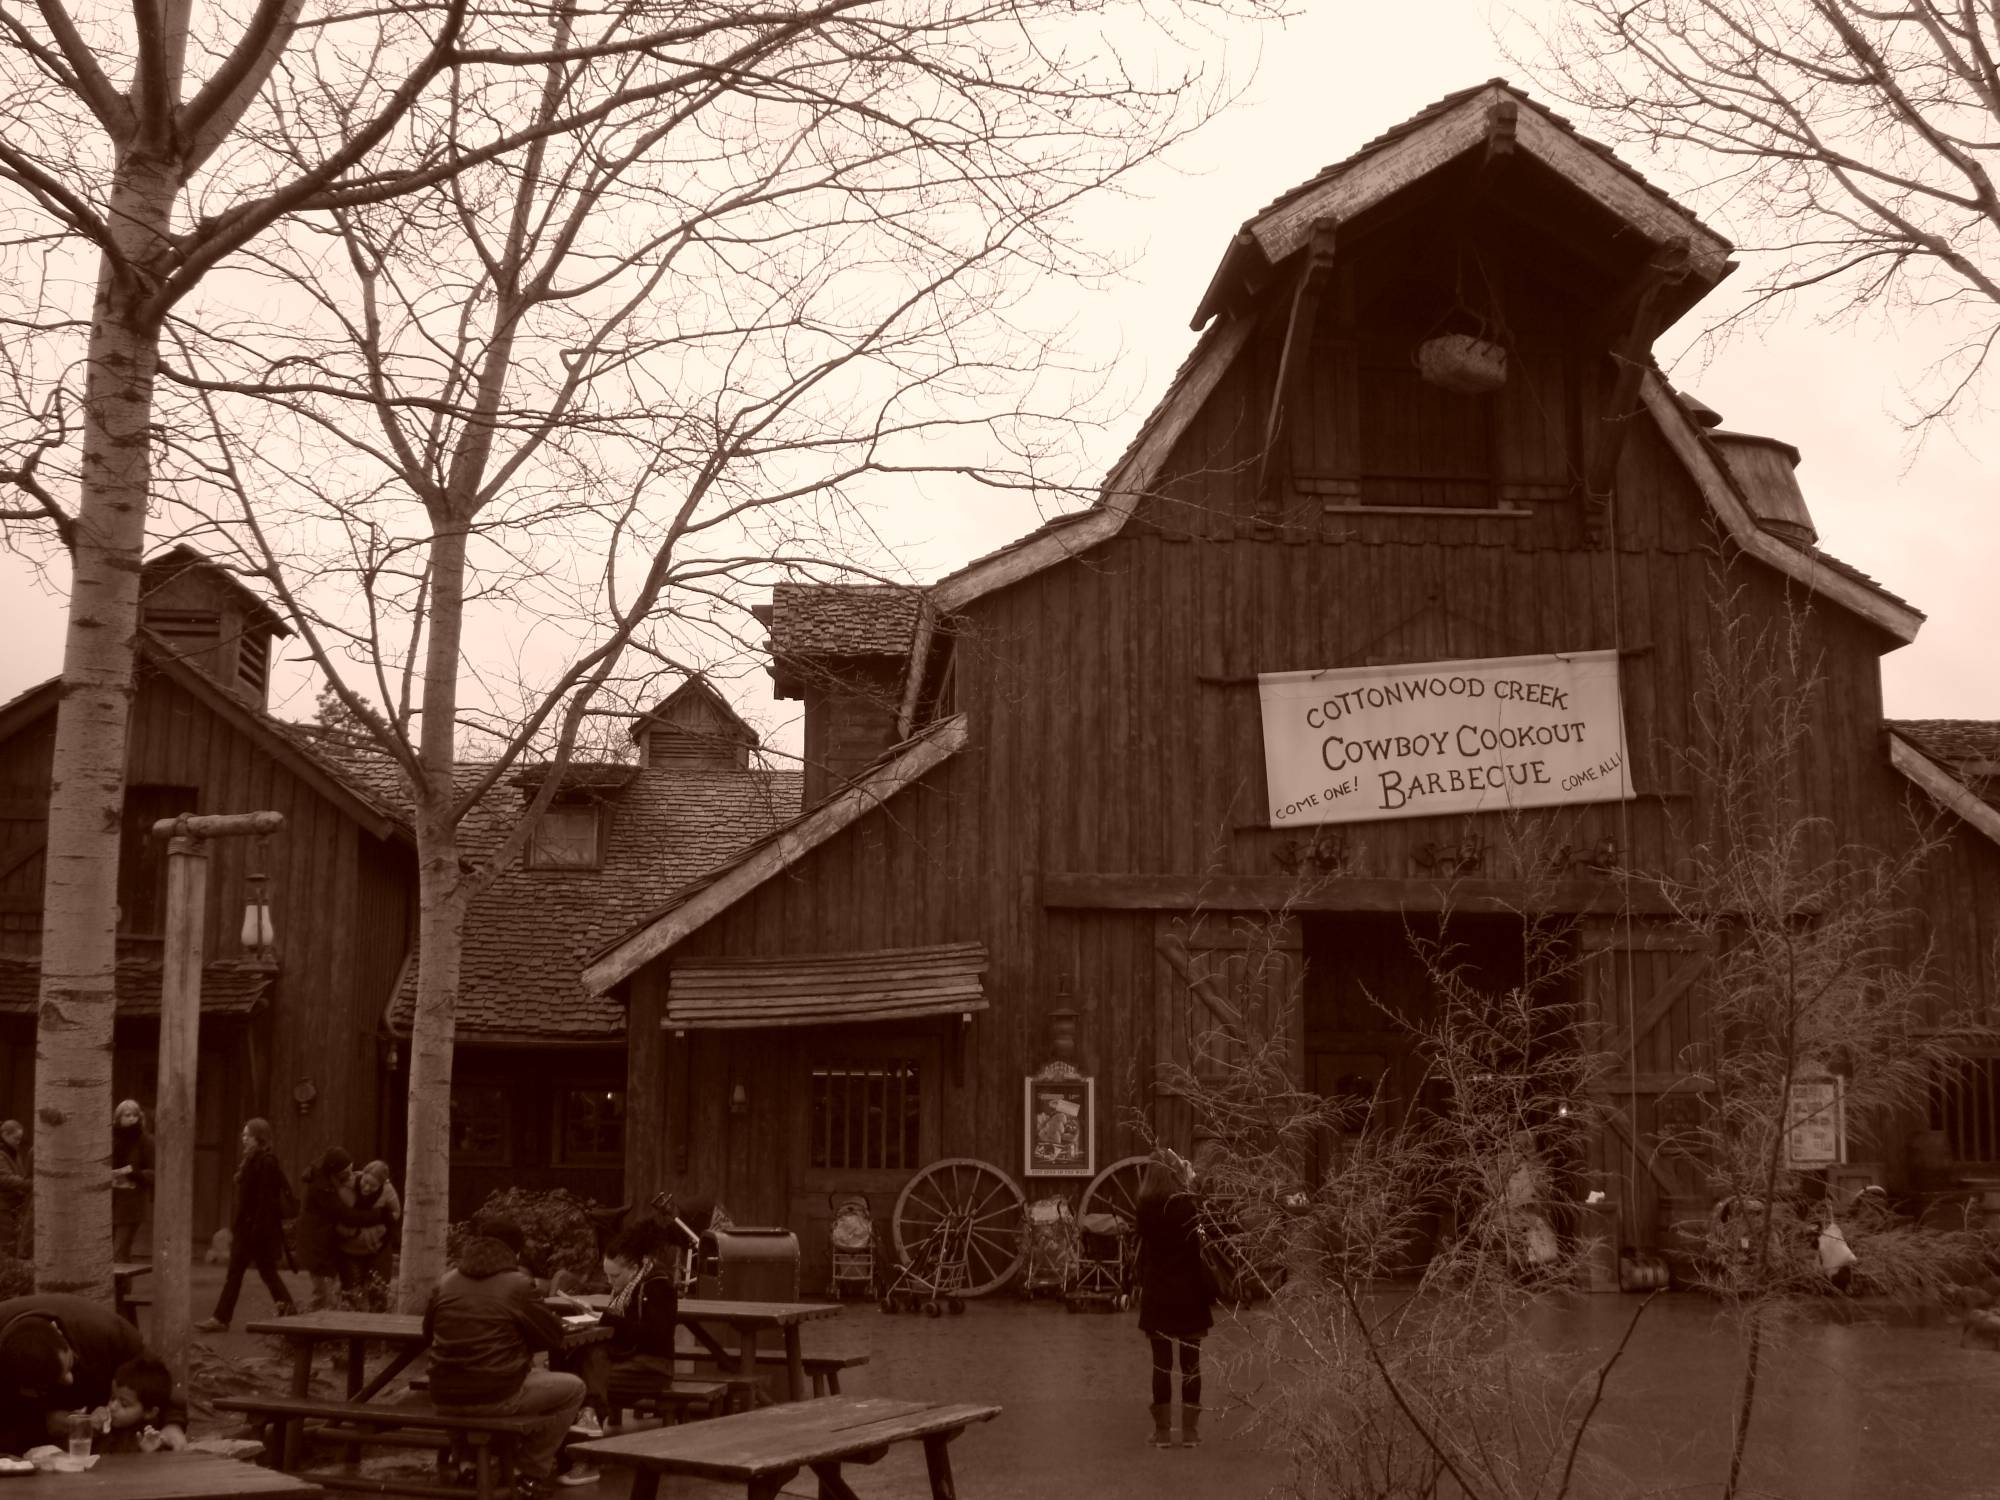 Disneyland Paris - Cowboy Cookout Barbecue